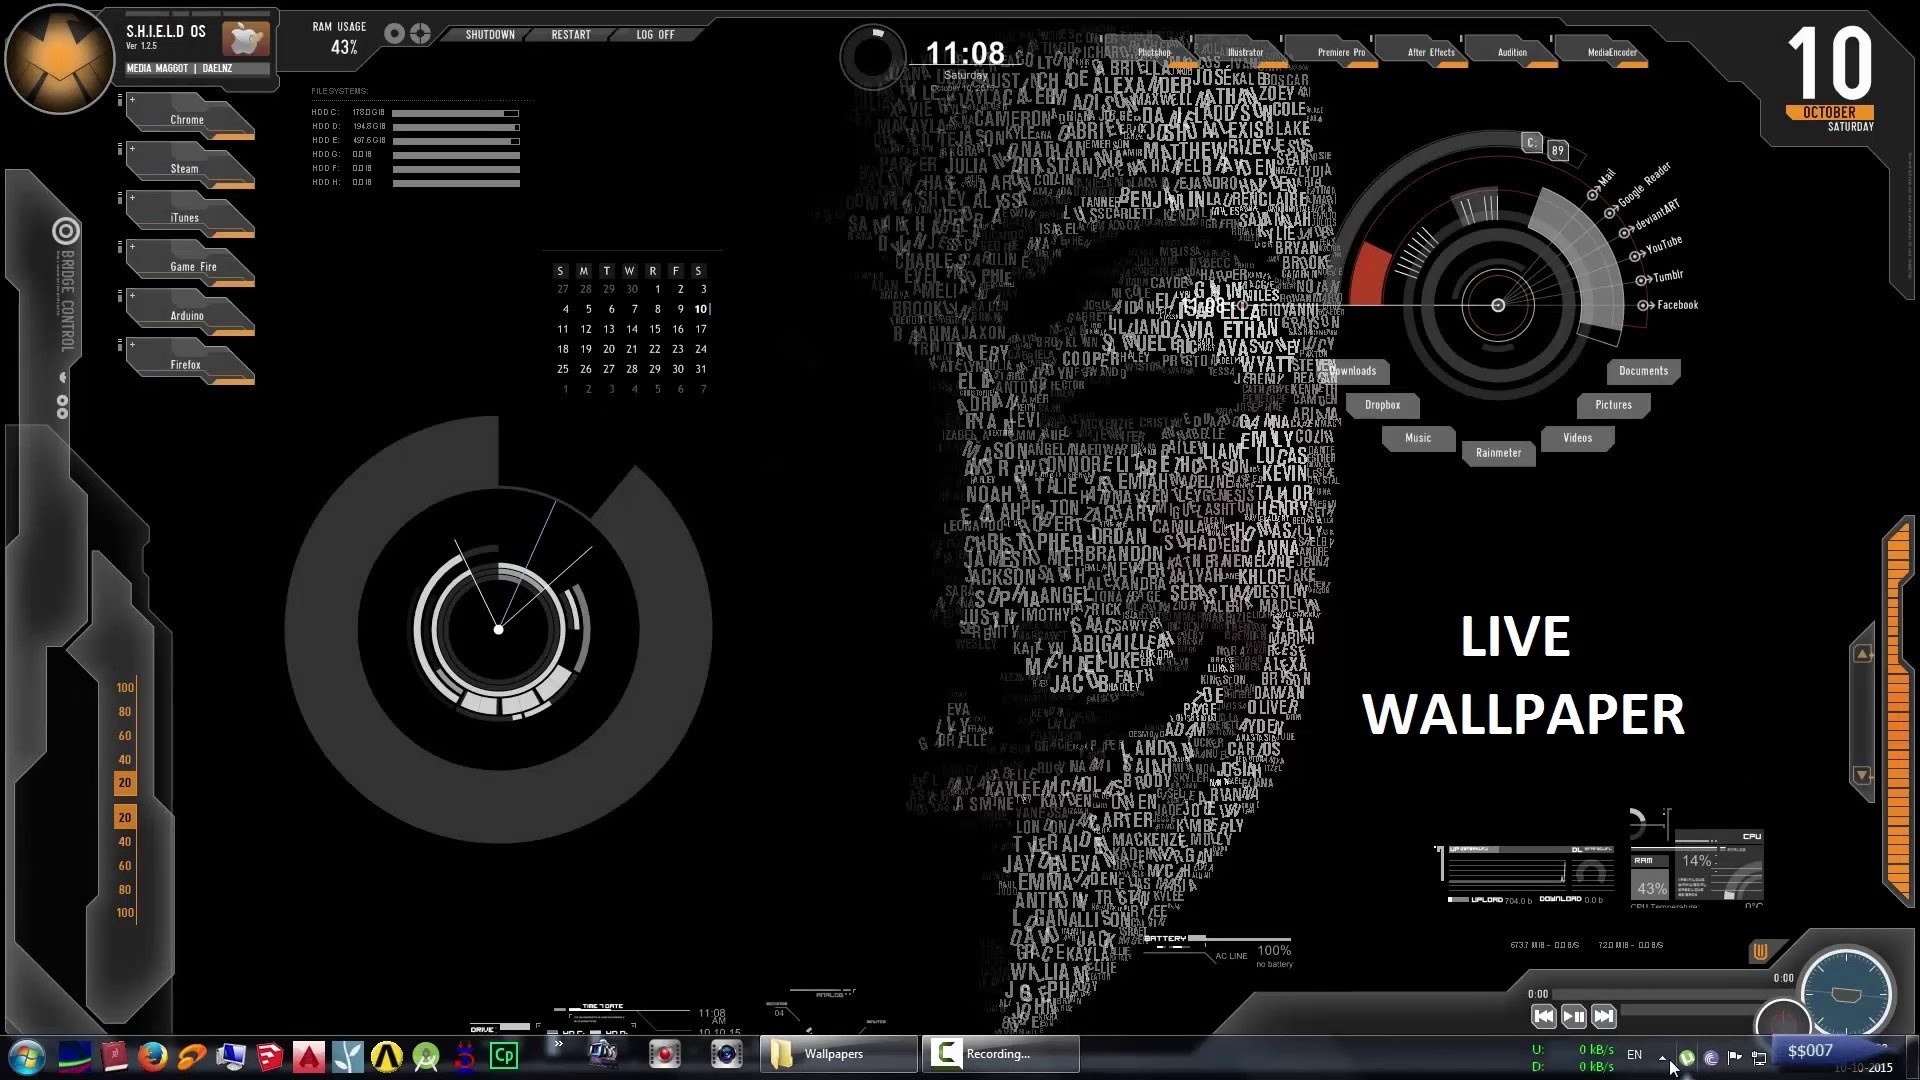 Live Wallpaper For Laptop Windows 10 Hacking Wallpaper For Pc 1920x1080 Download Hd Wallpaper Wallpapertip